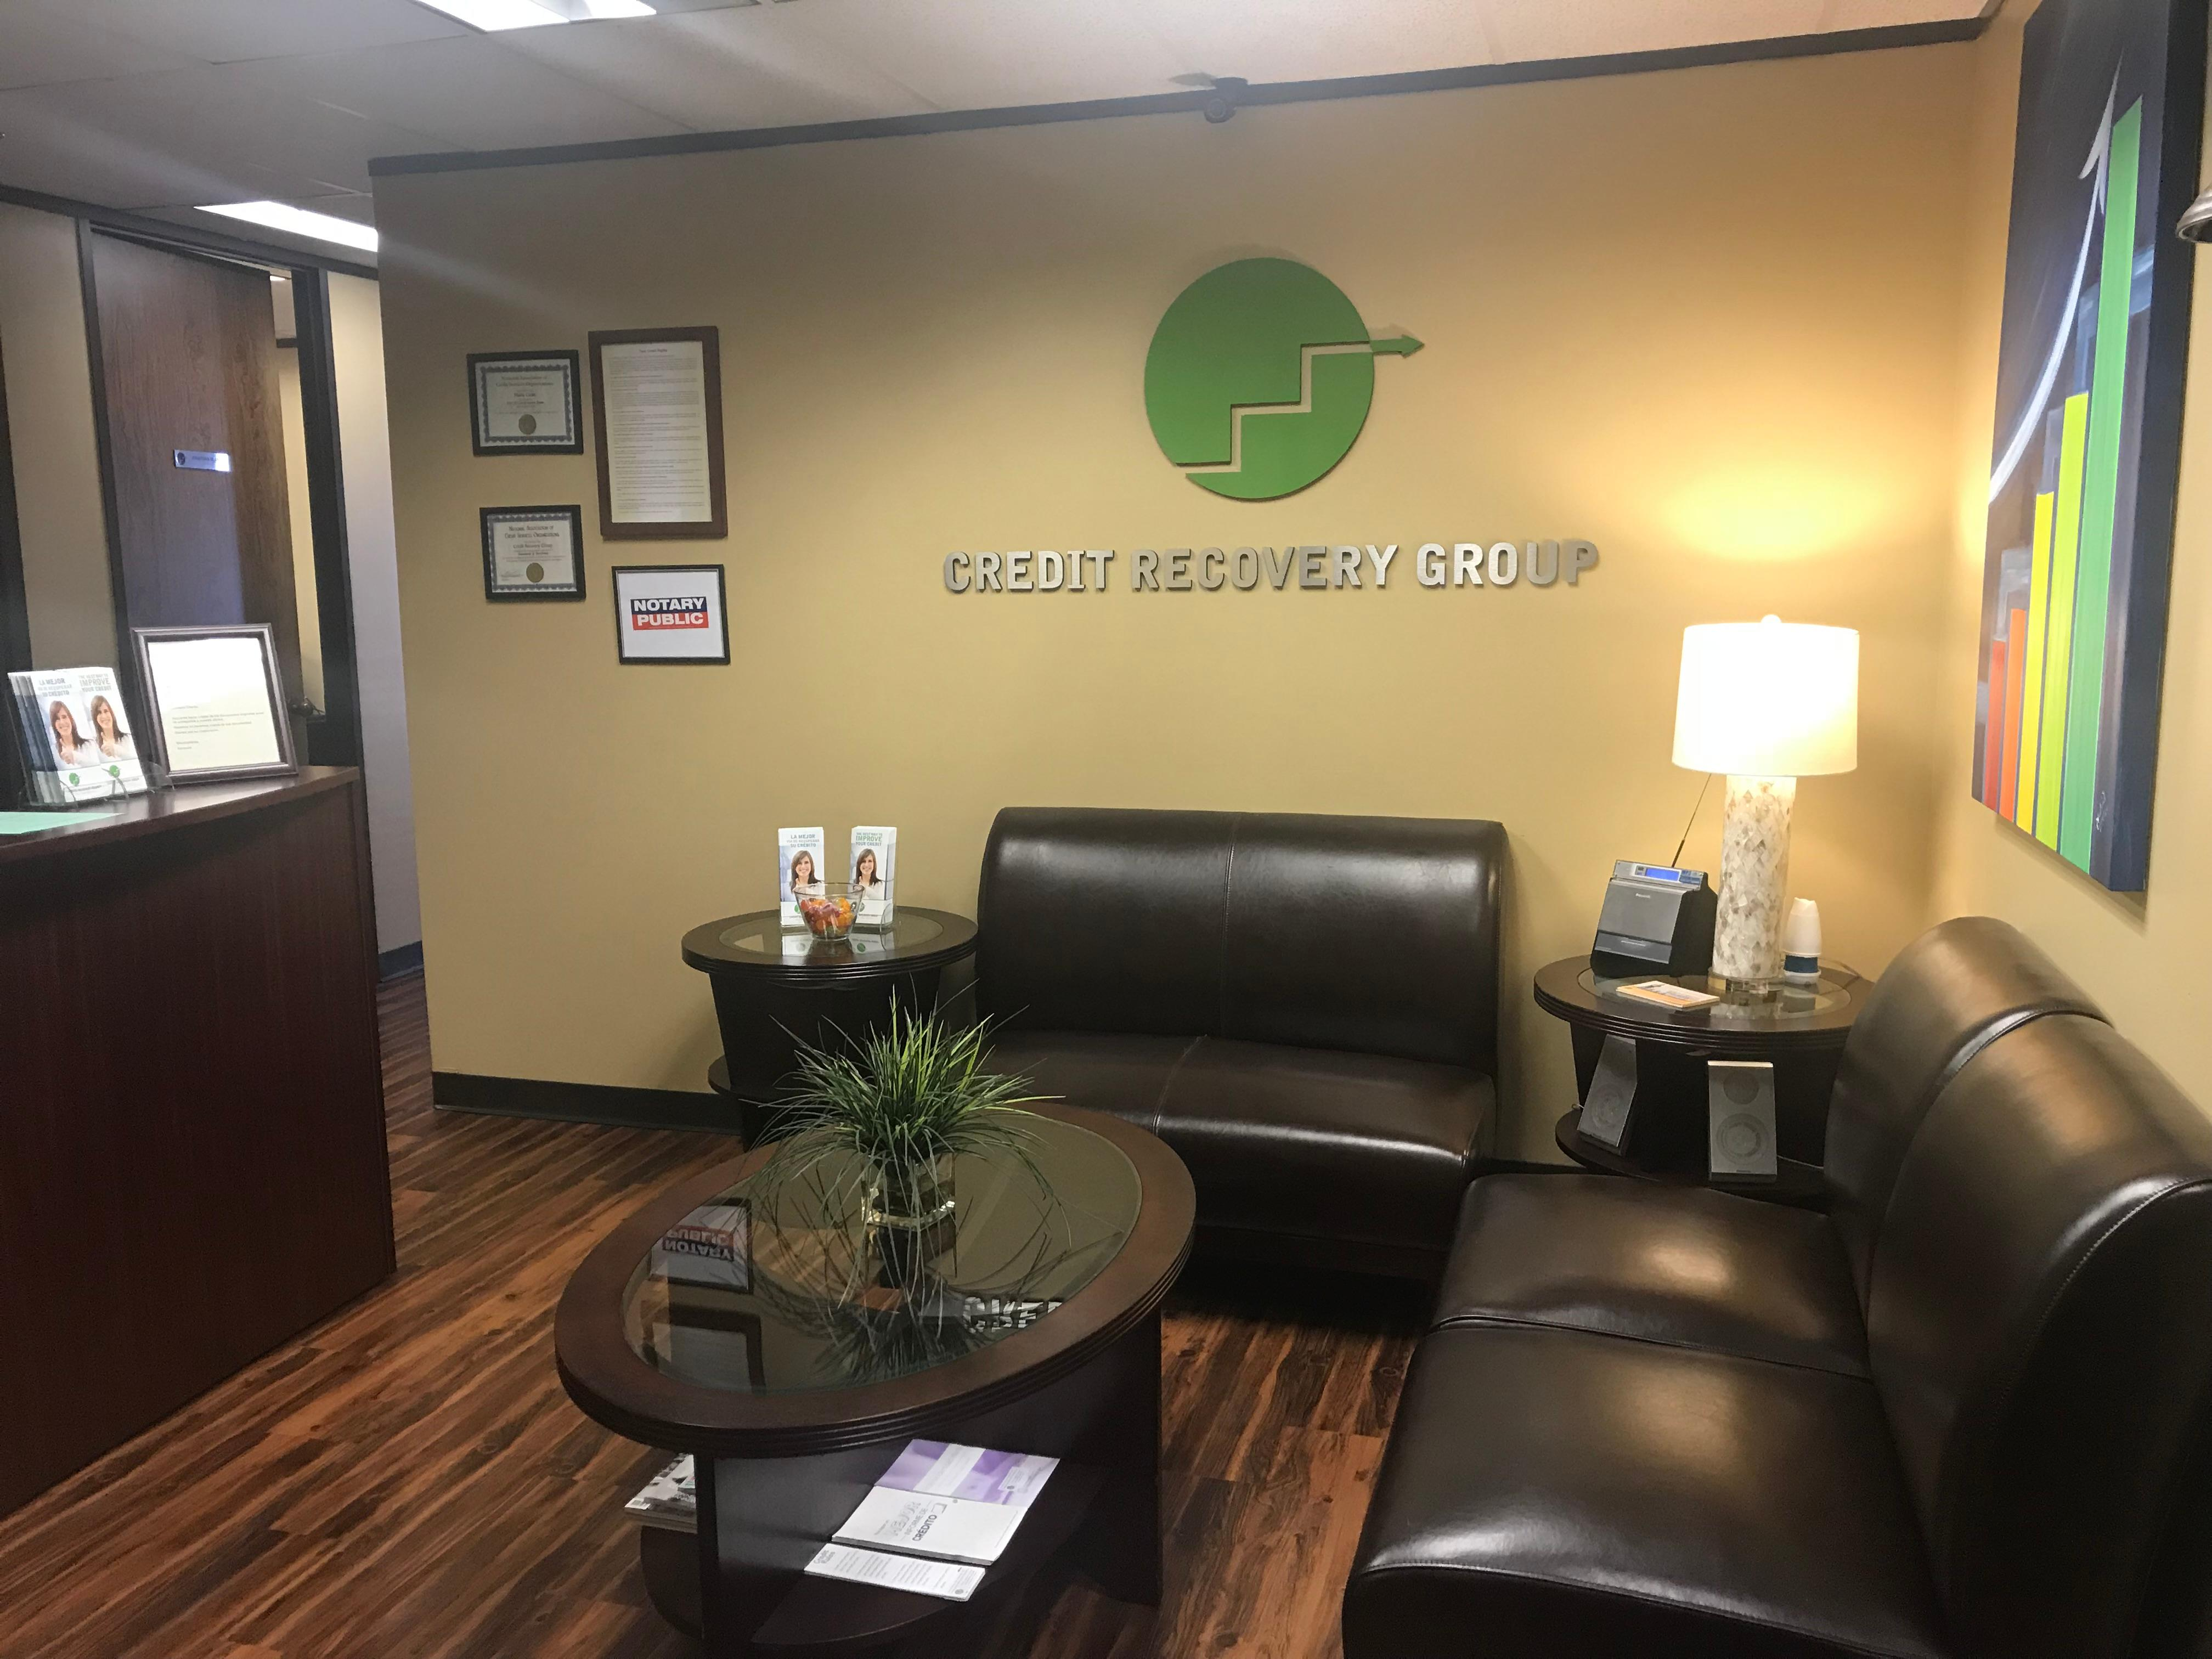 Credit Recovery Group, Inc